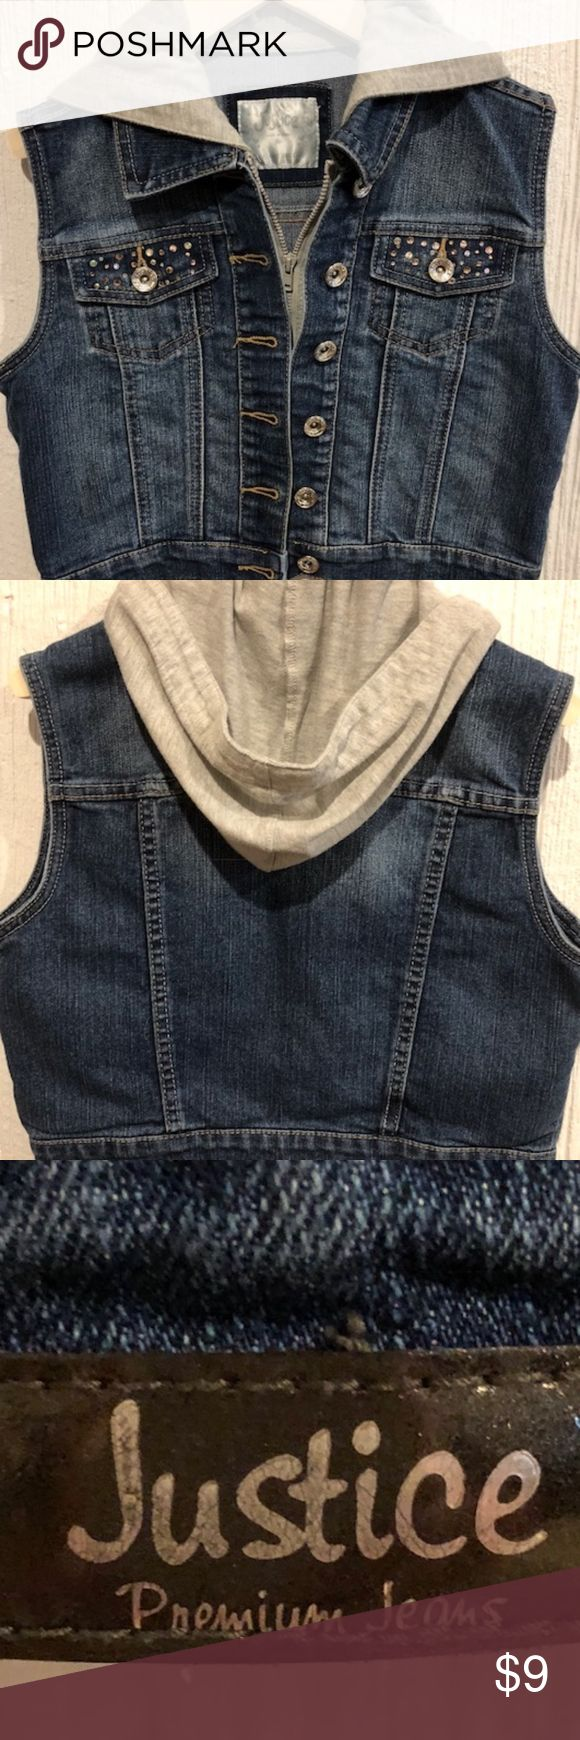 Justice Girl's Hooded Denim Vest Size 14 Nice hooded, denim jean vest from Justice! This vest is lightly worn and distressed, and has little sparkly rhinestones on the front pockets. There is a couple of rhinestones that are missing, but you can't really tell. The hood is gray. Good condition. Girls size 14. Justice Jackets & Coats Jean Jackets